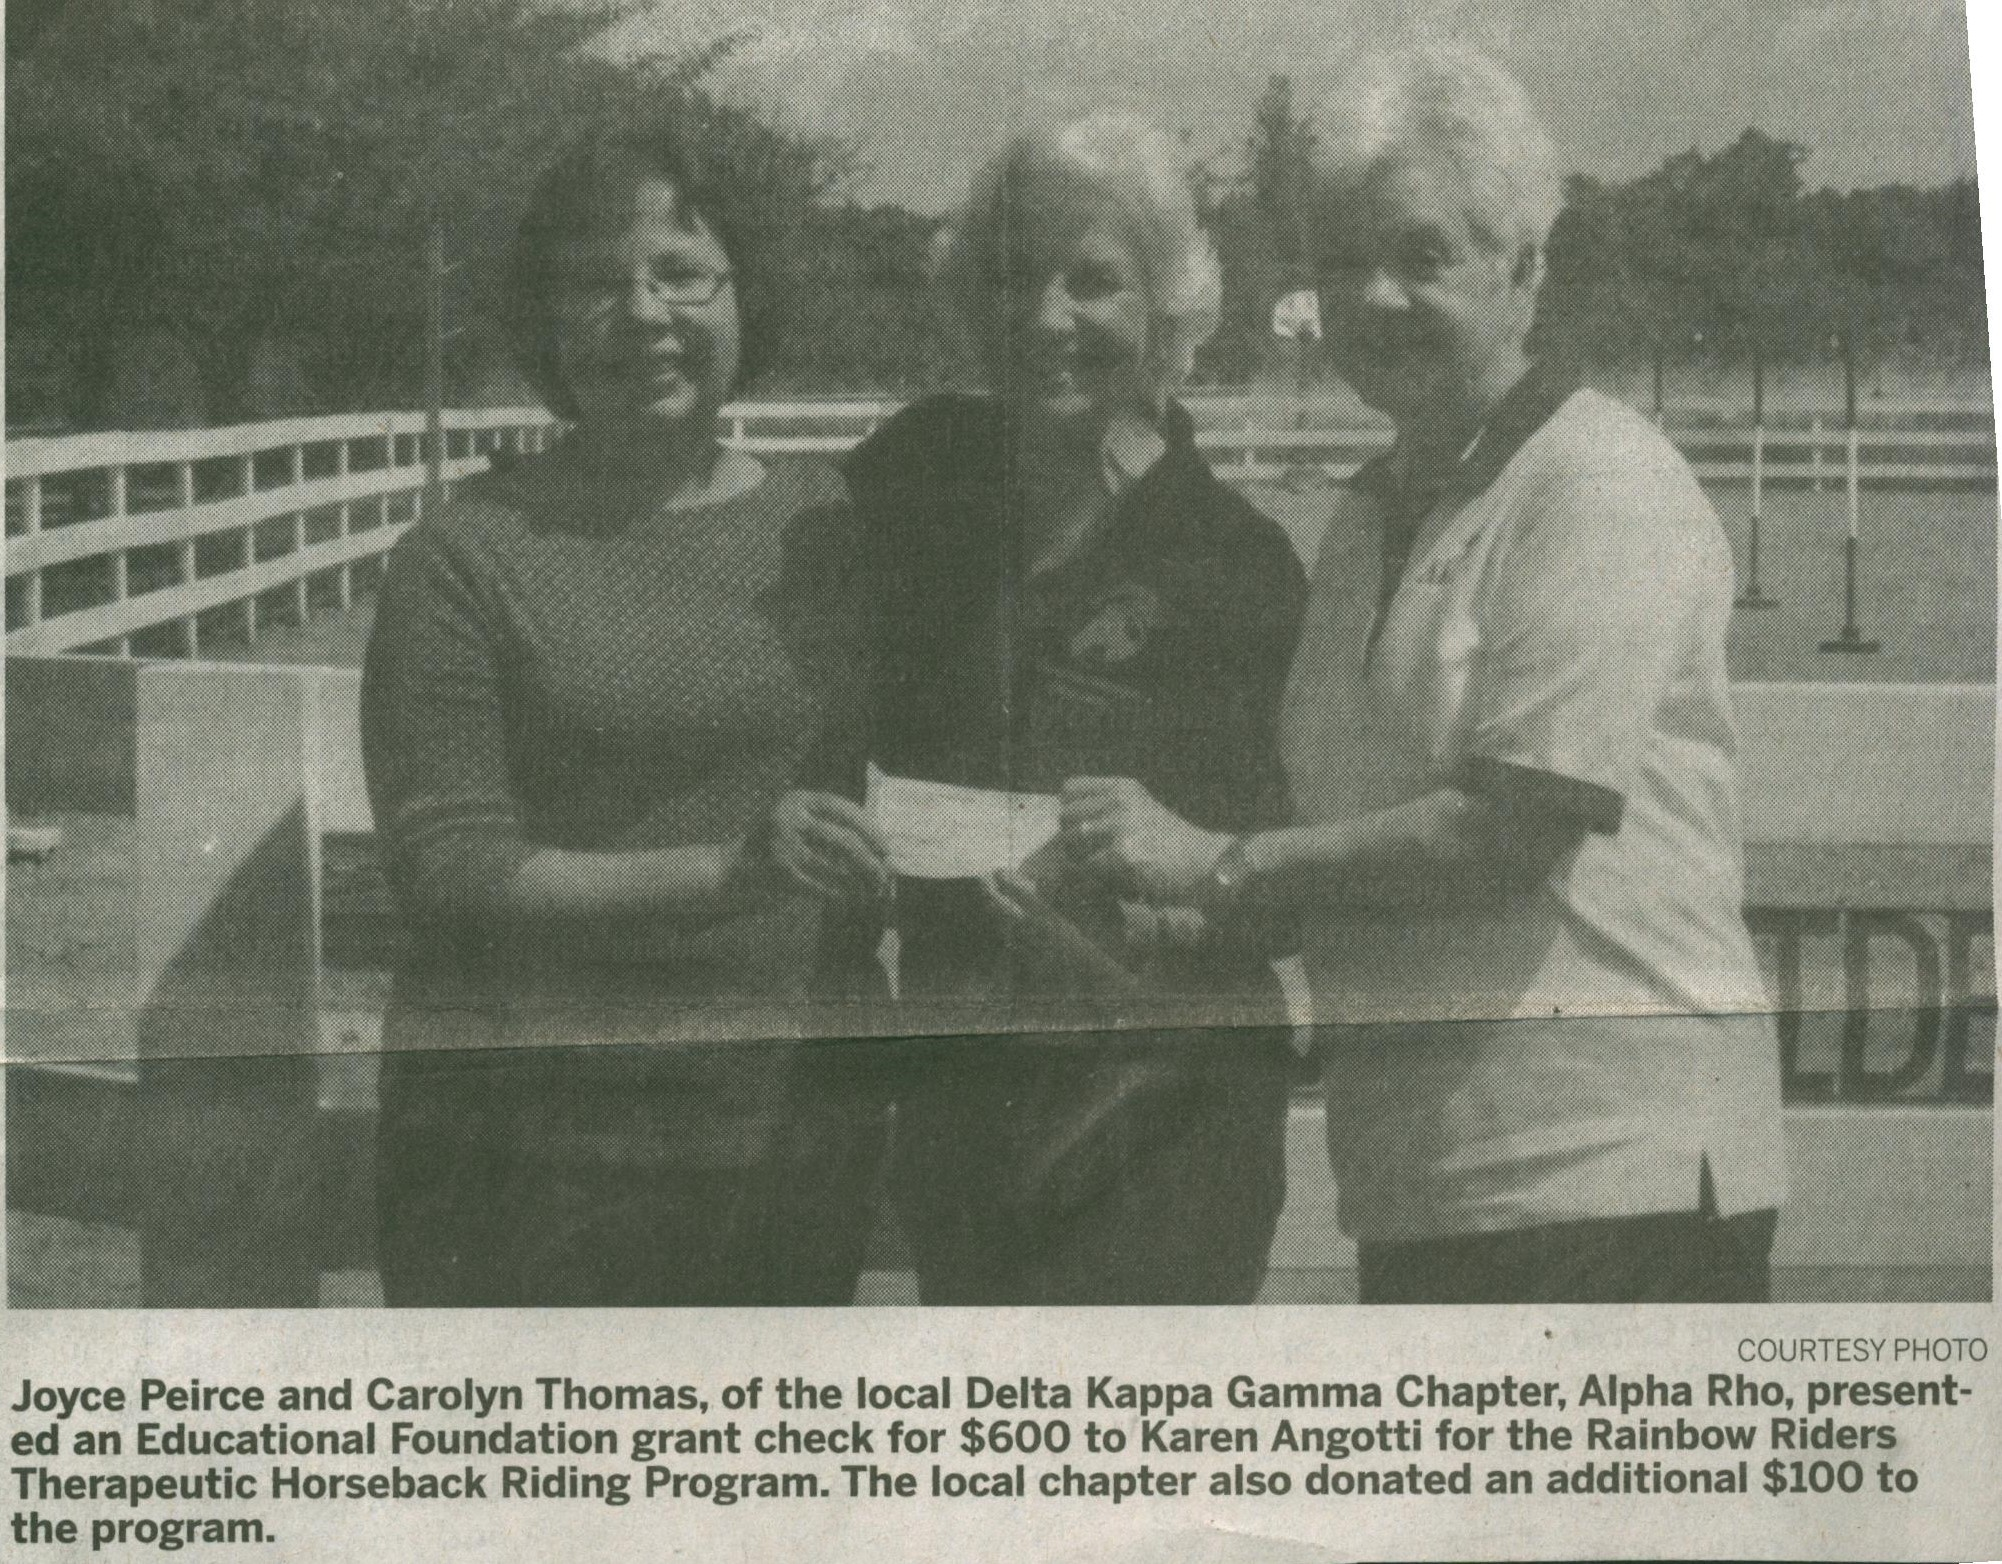 Local Delta Kappa Gamma Chapter Donates